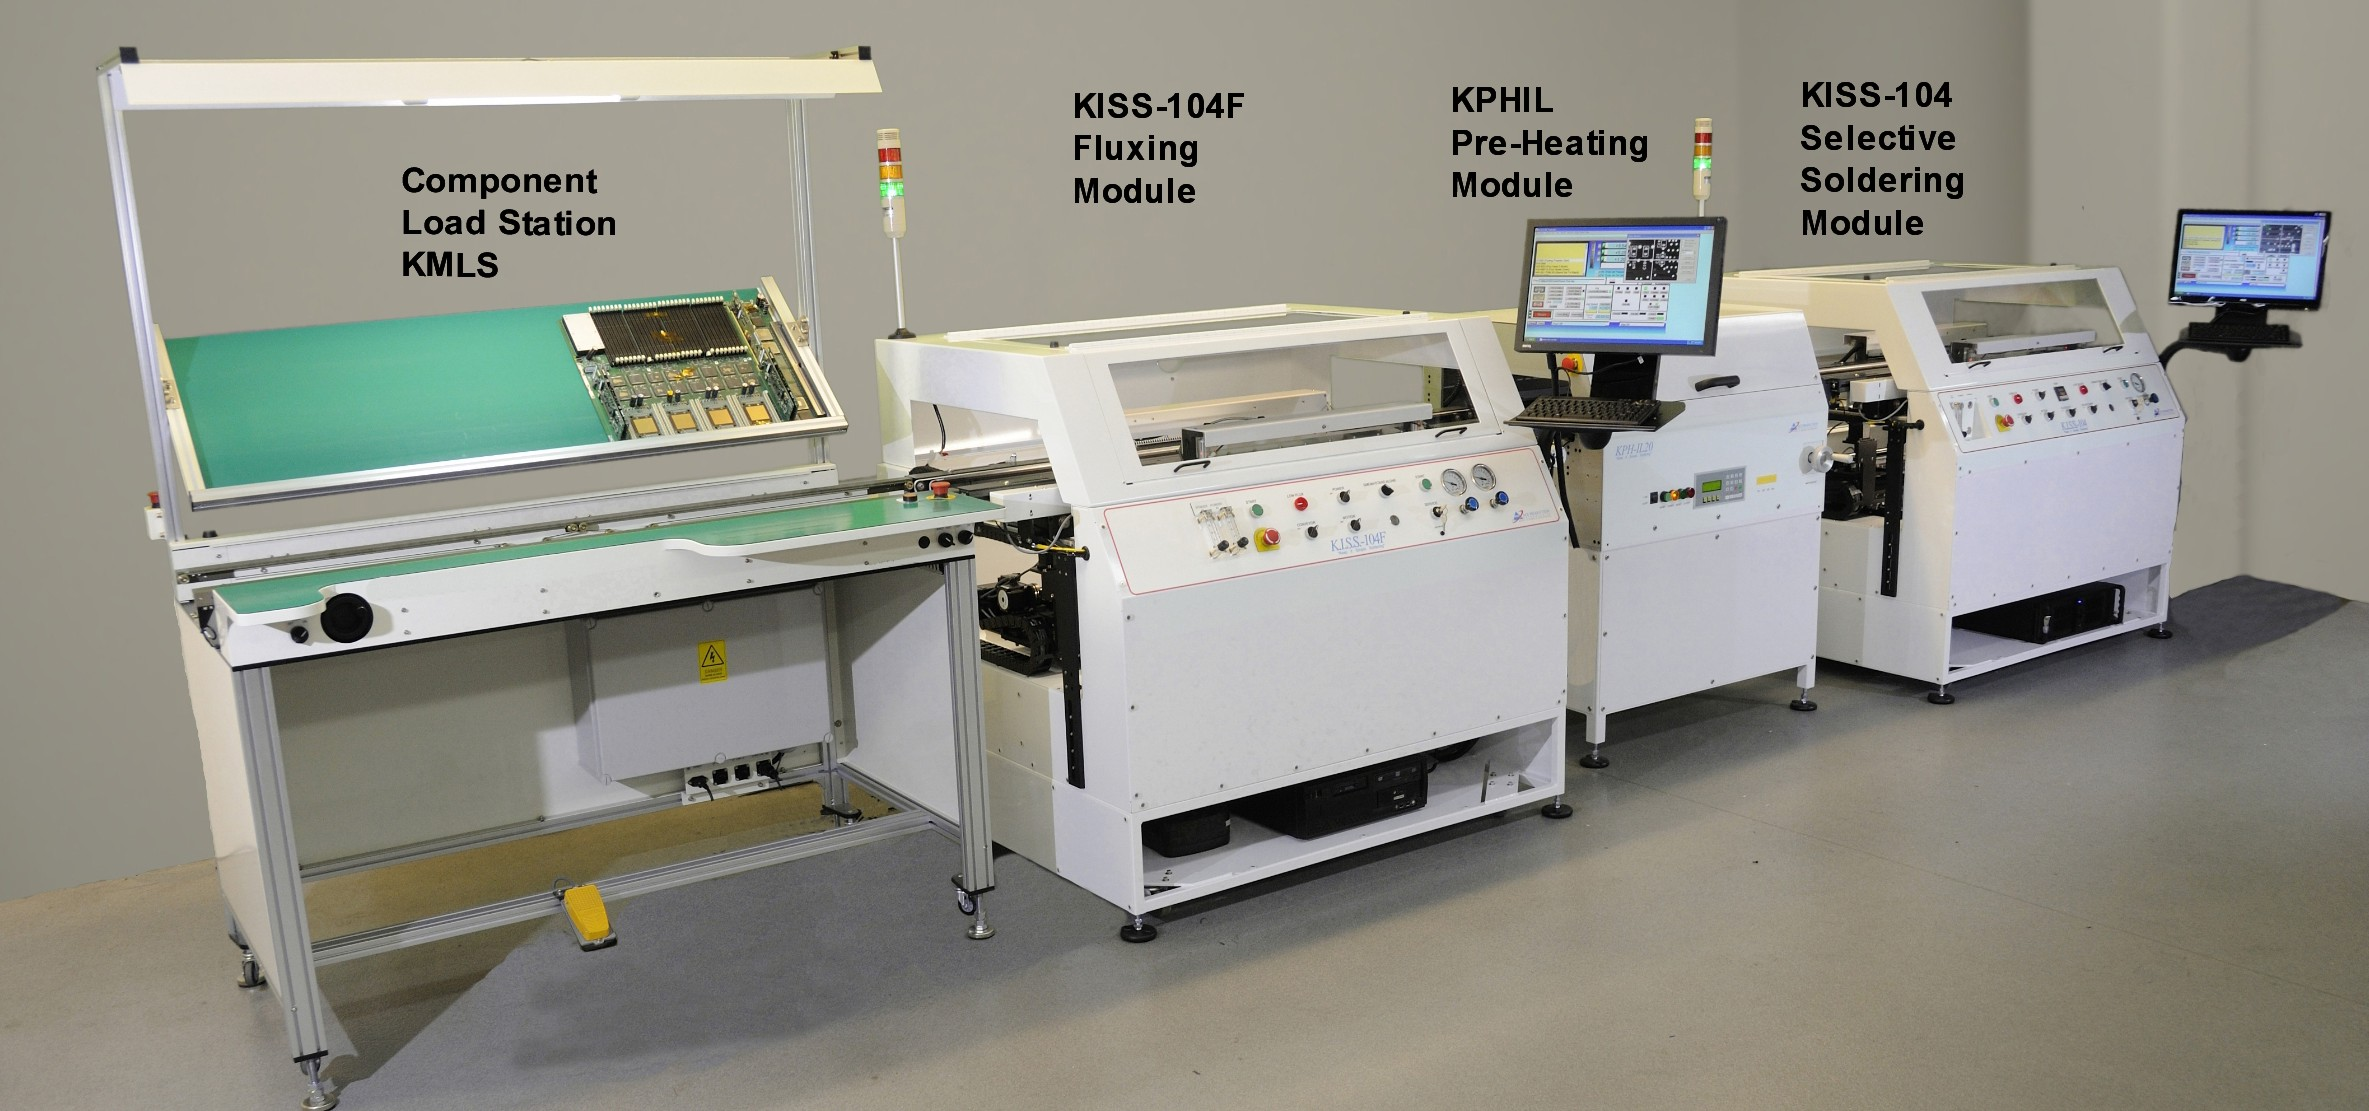 Kiss 104 Automated Selective Soldering Machine